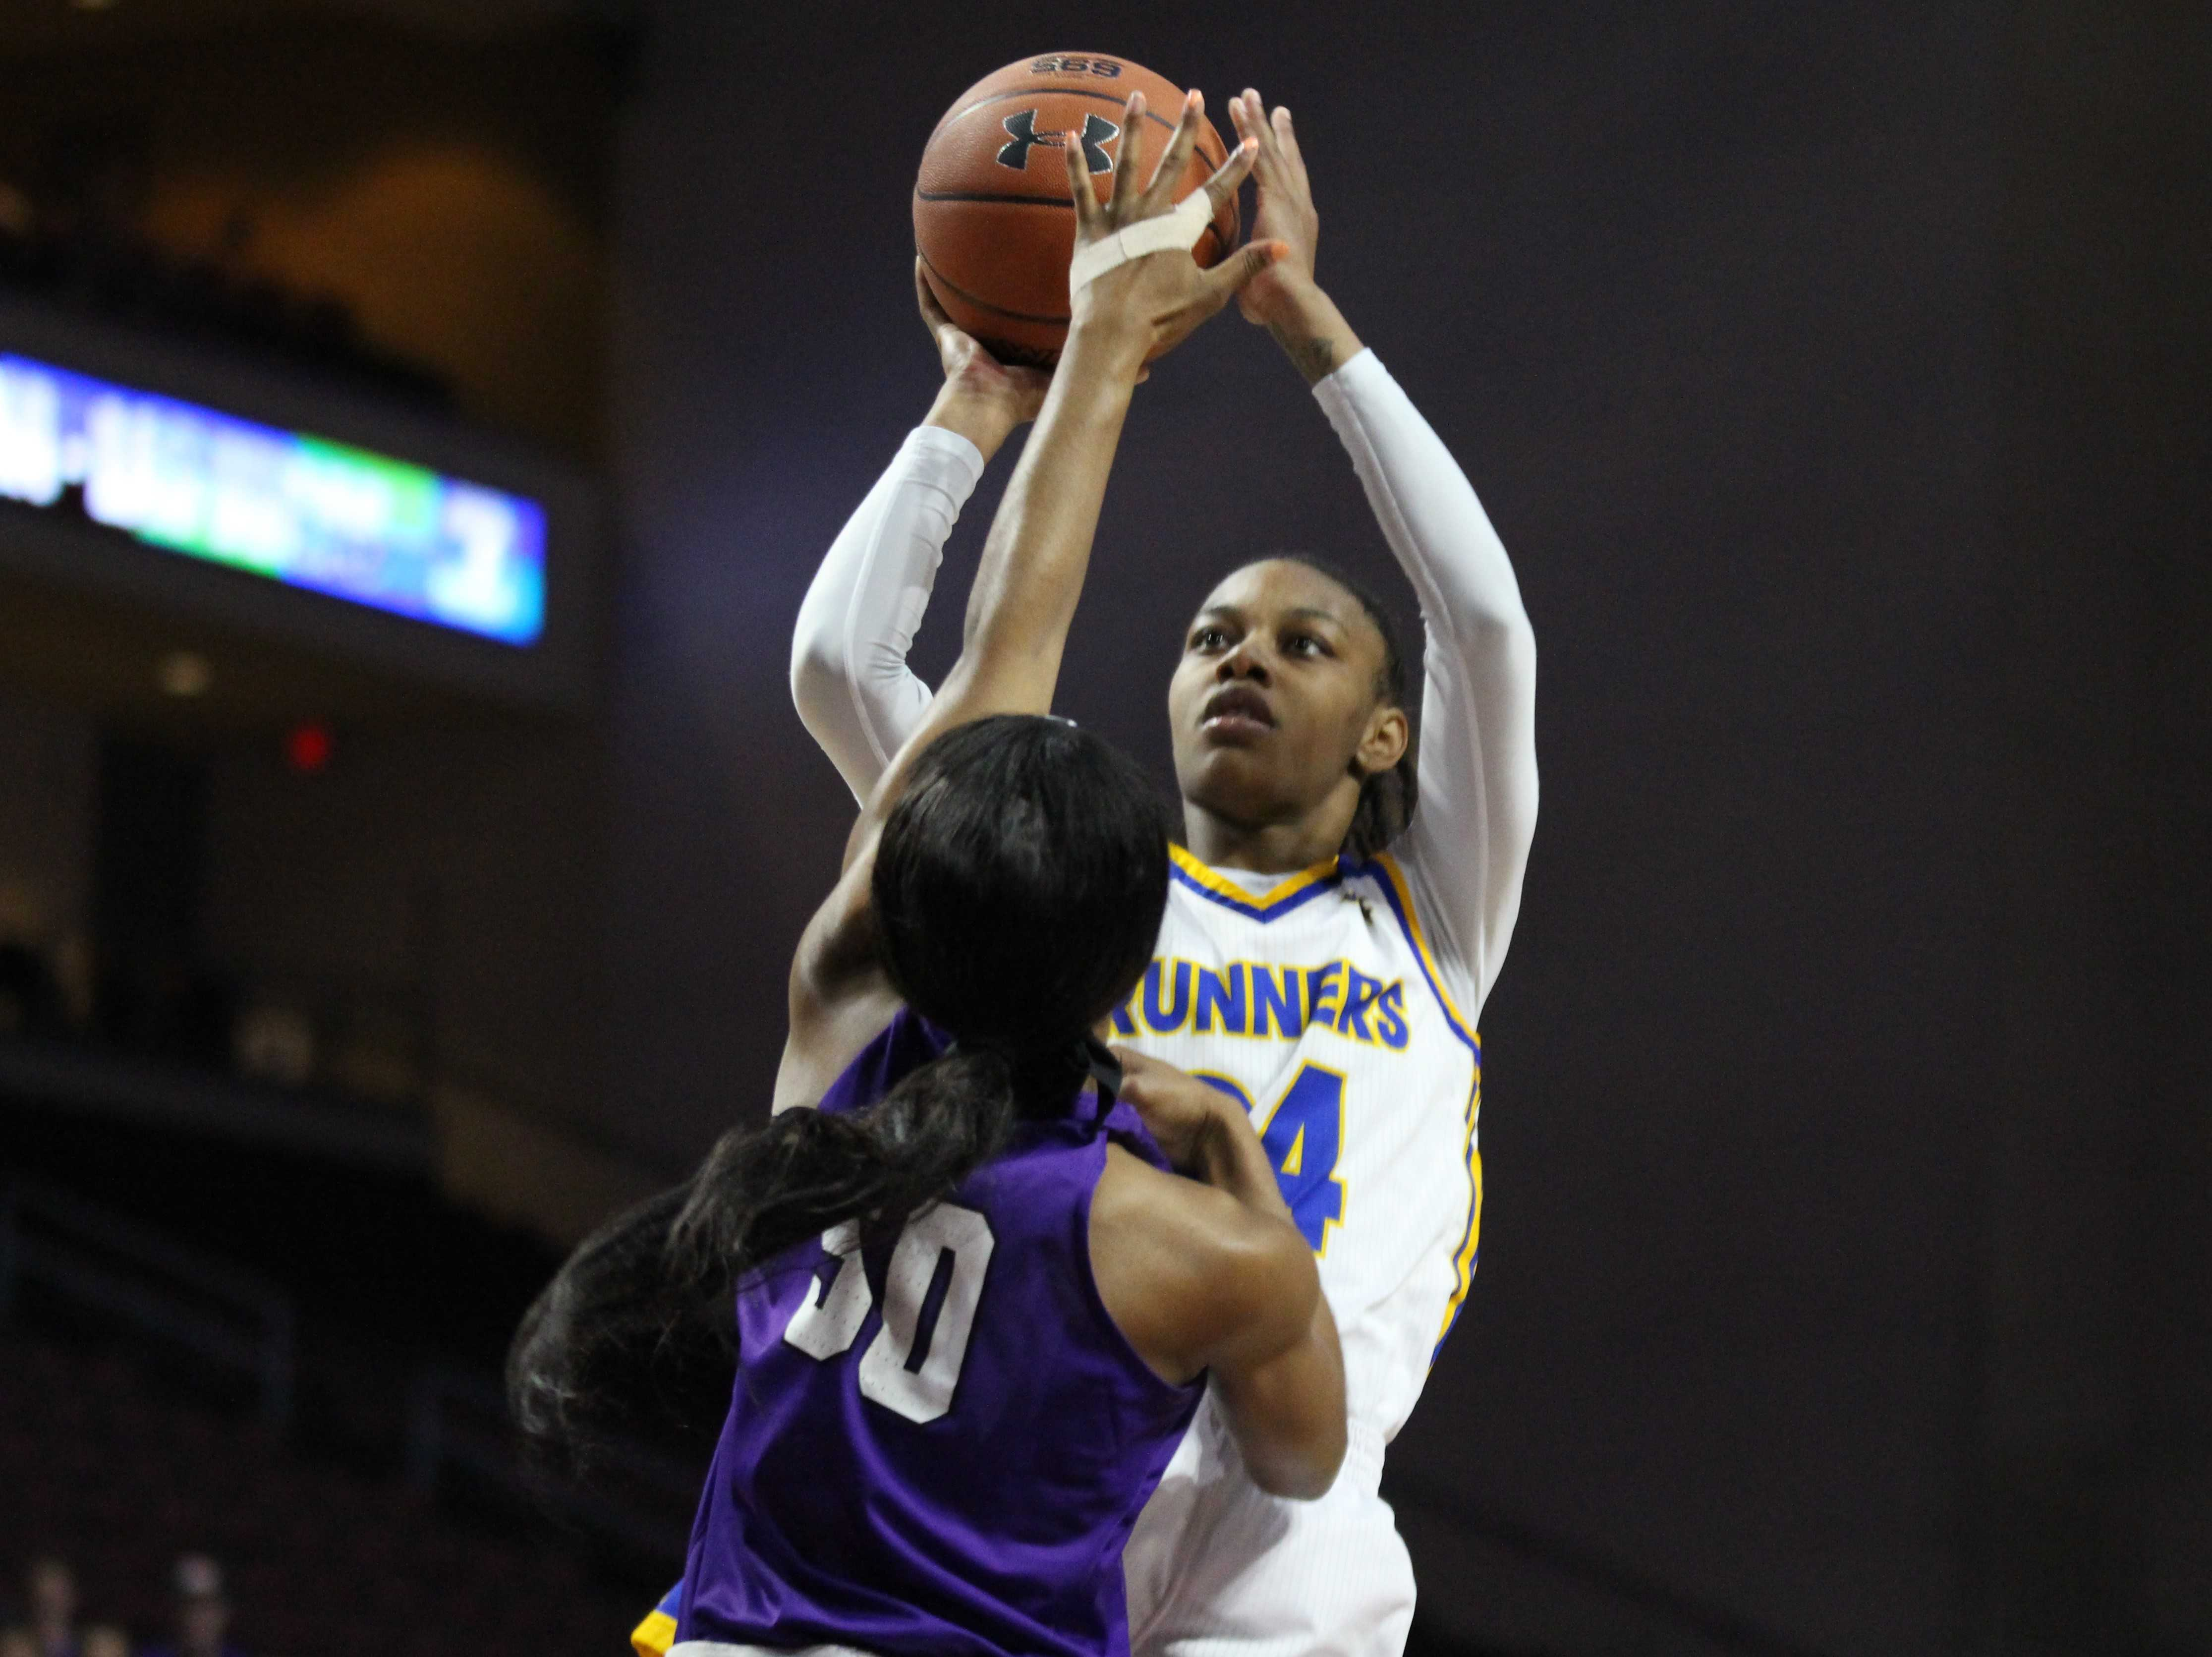 CSUB women's basketball suffers WAC championship heartbreak